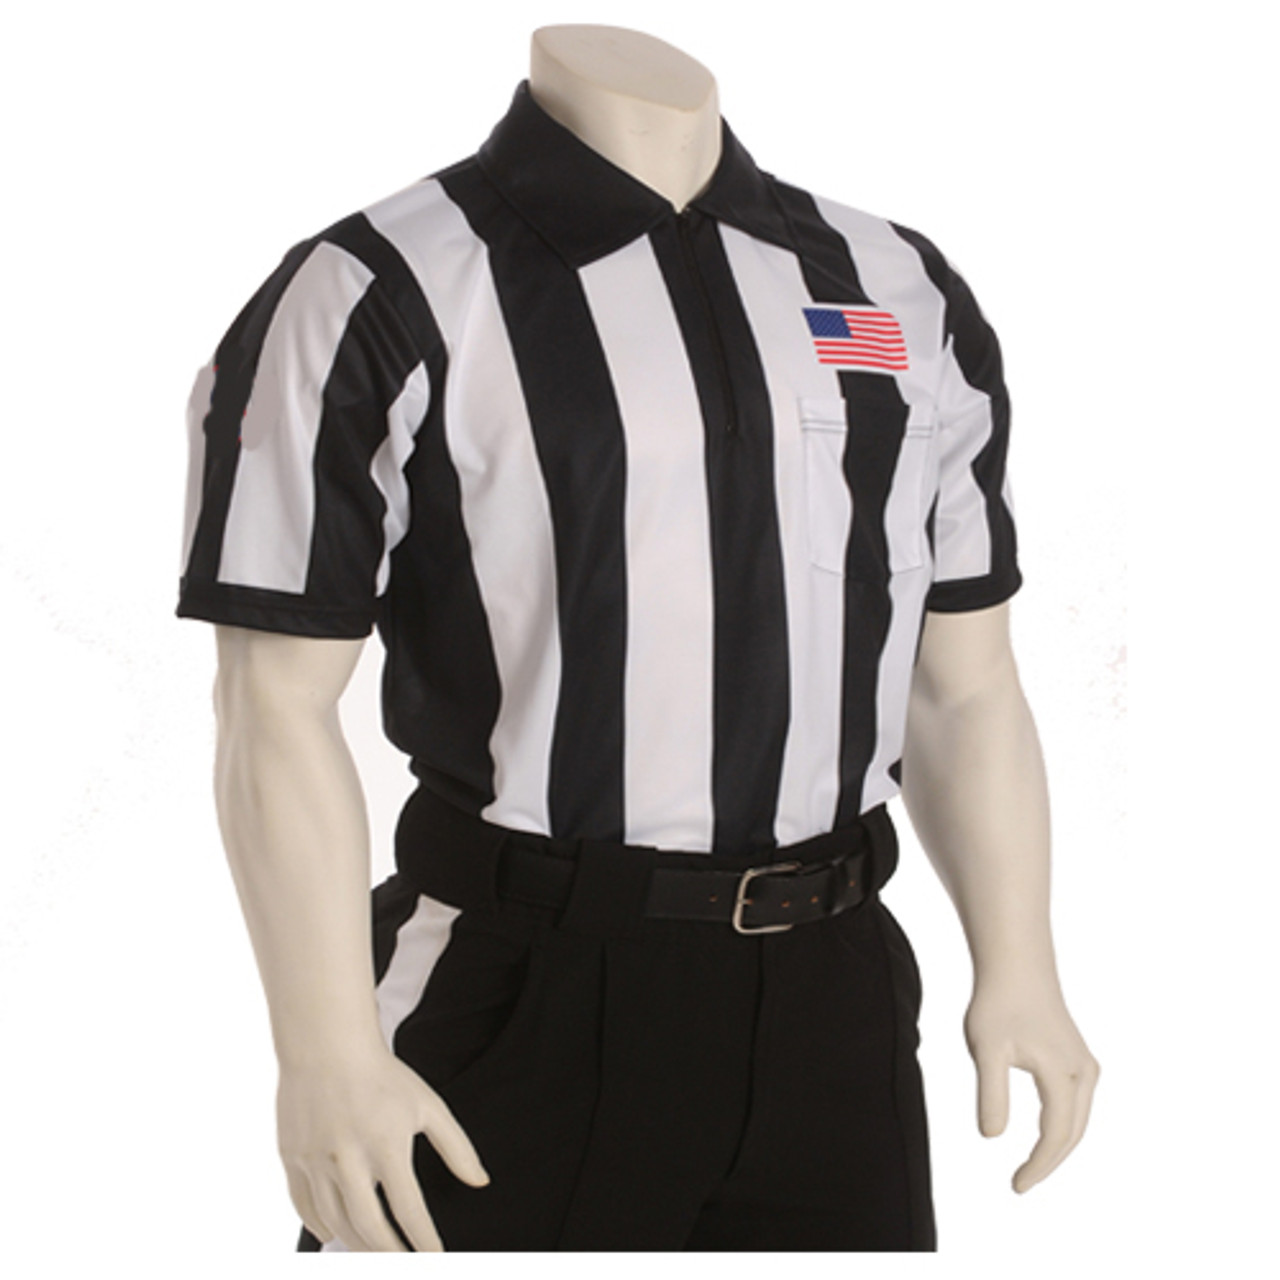 CFOA Short Sleeve Football Referee Shirt